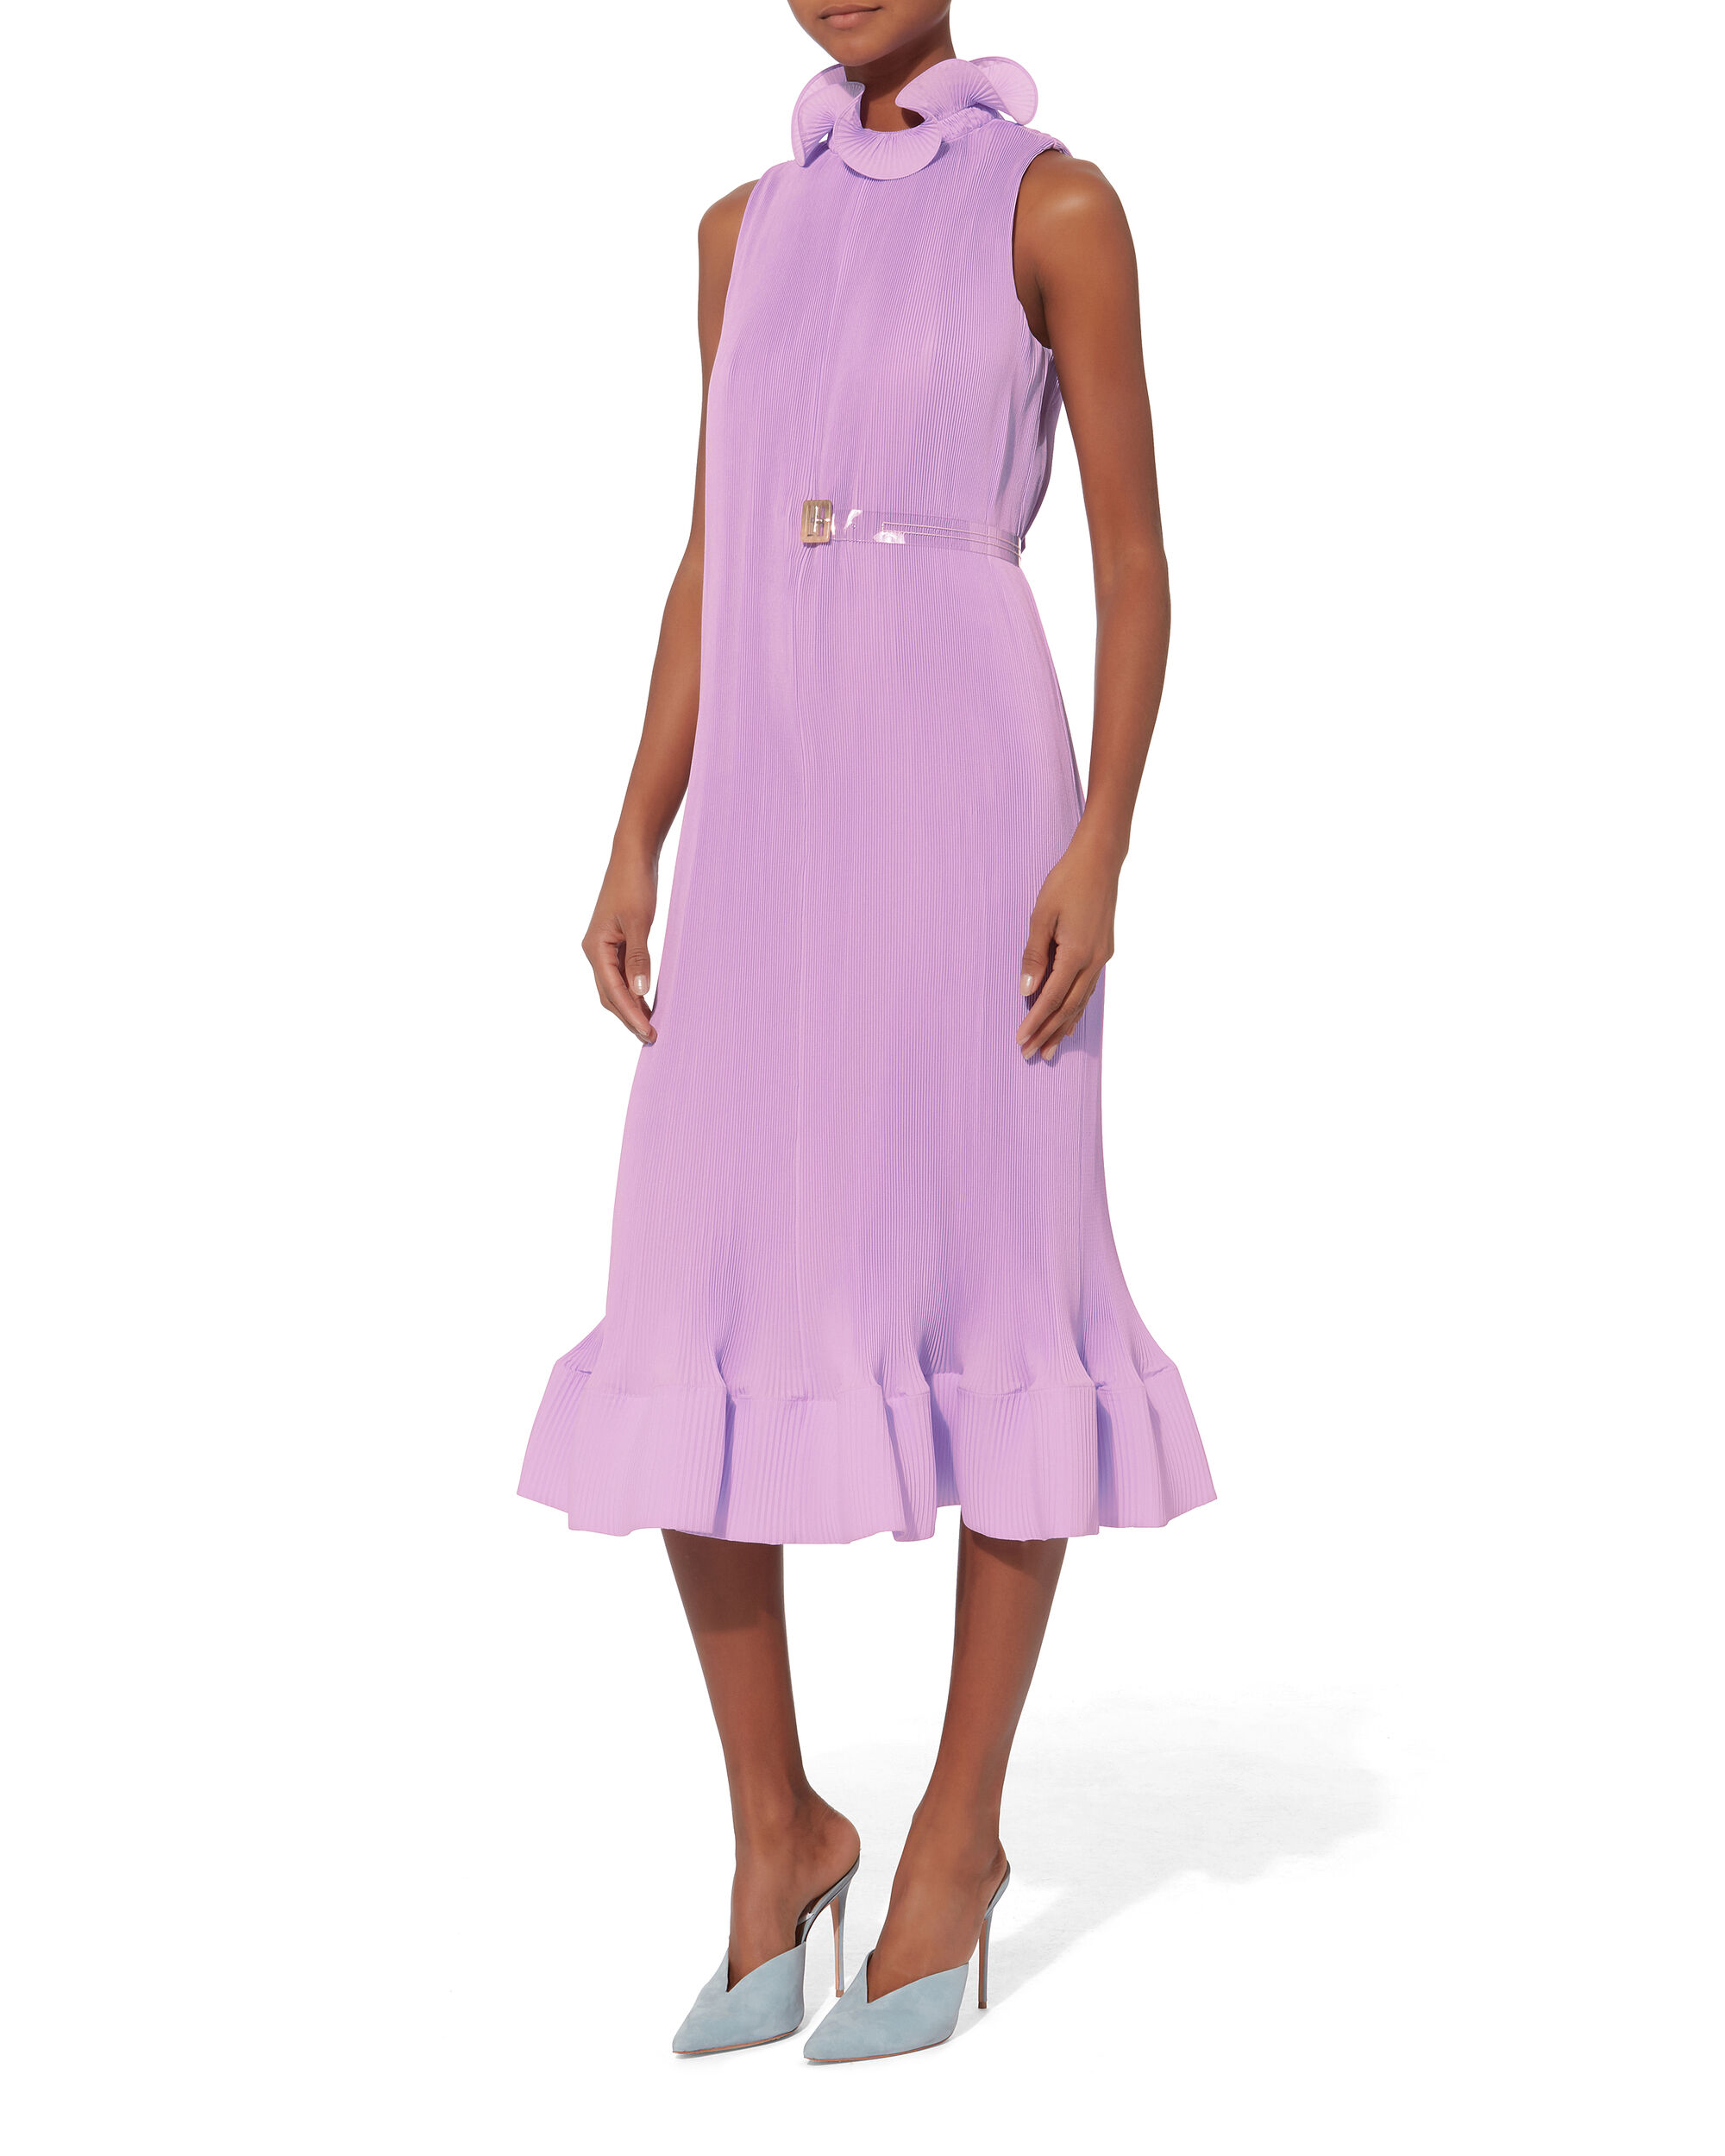 Pleated Belted Light Purple Dress, PURPLE-LT, hi-res